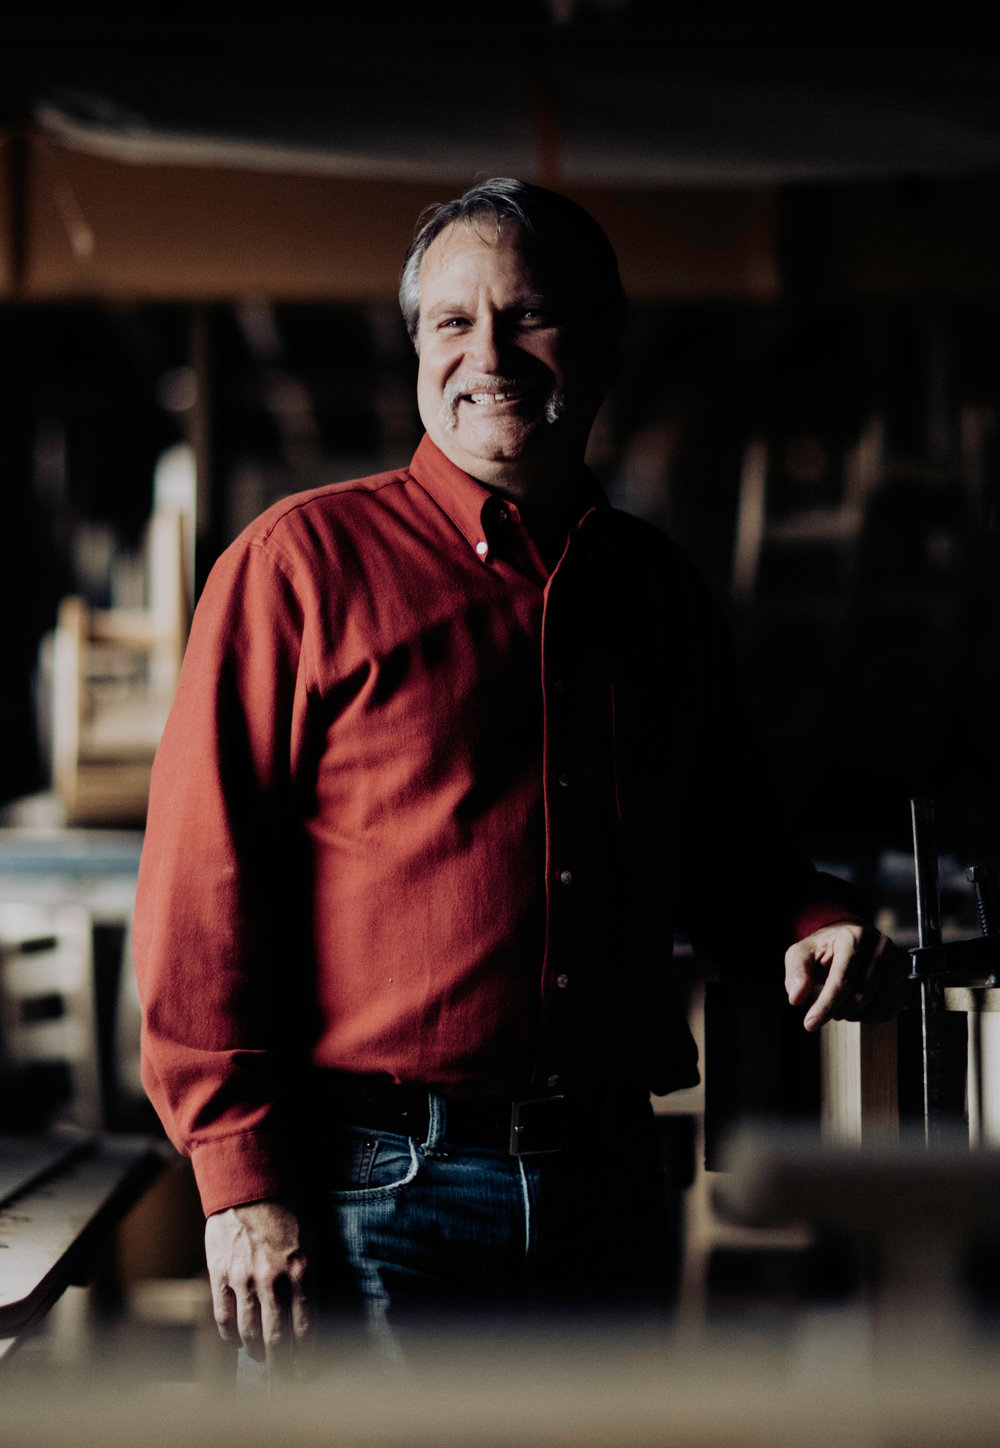 Jerry Whitmer:  Owner, jack of all trades  In running Whitmer Woodworks, Jerry relies on his life experiences as a farm kid, graphic designer/printer, and coach. His farm days taught him to get the job done when the sun is shining. In the design/printing field, he learned that deadlines must be met. As a coach, he learned to adapt to bad conditions and ever-changing team dynamics.  To Jerry, working with clients means listening to their needs, asking questions, and then coming up with solutions. As a businessman, his philosophy is the Golden Rule: Treat others as you would like to be treated. It leads to a great atmosphere in the work place, and all the other stuff falls into place.